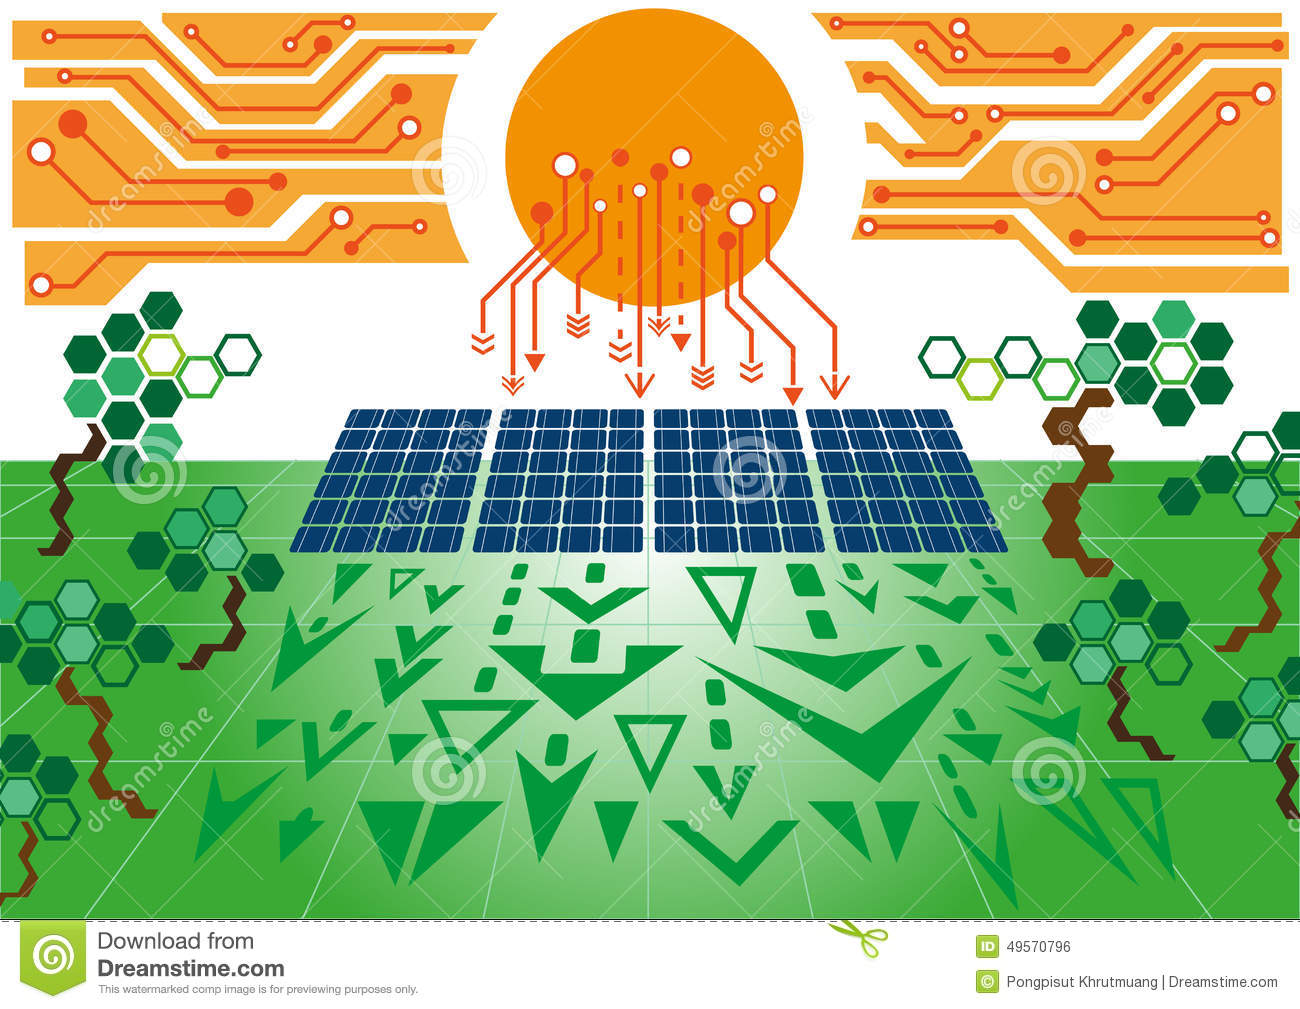 Solar Cell Power Plant02 Stock Vector Illustration Of Generating Electricity Diagram